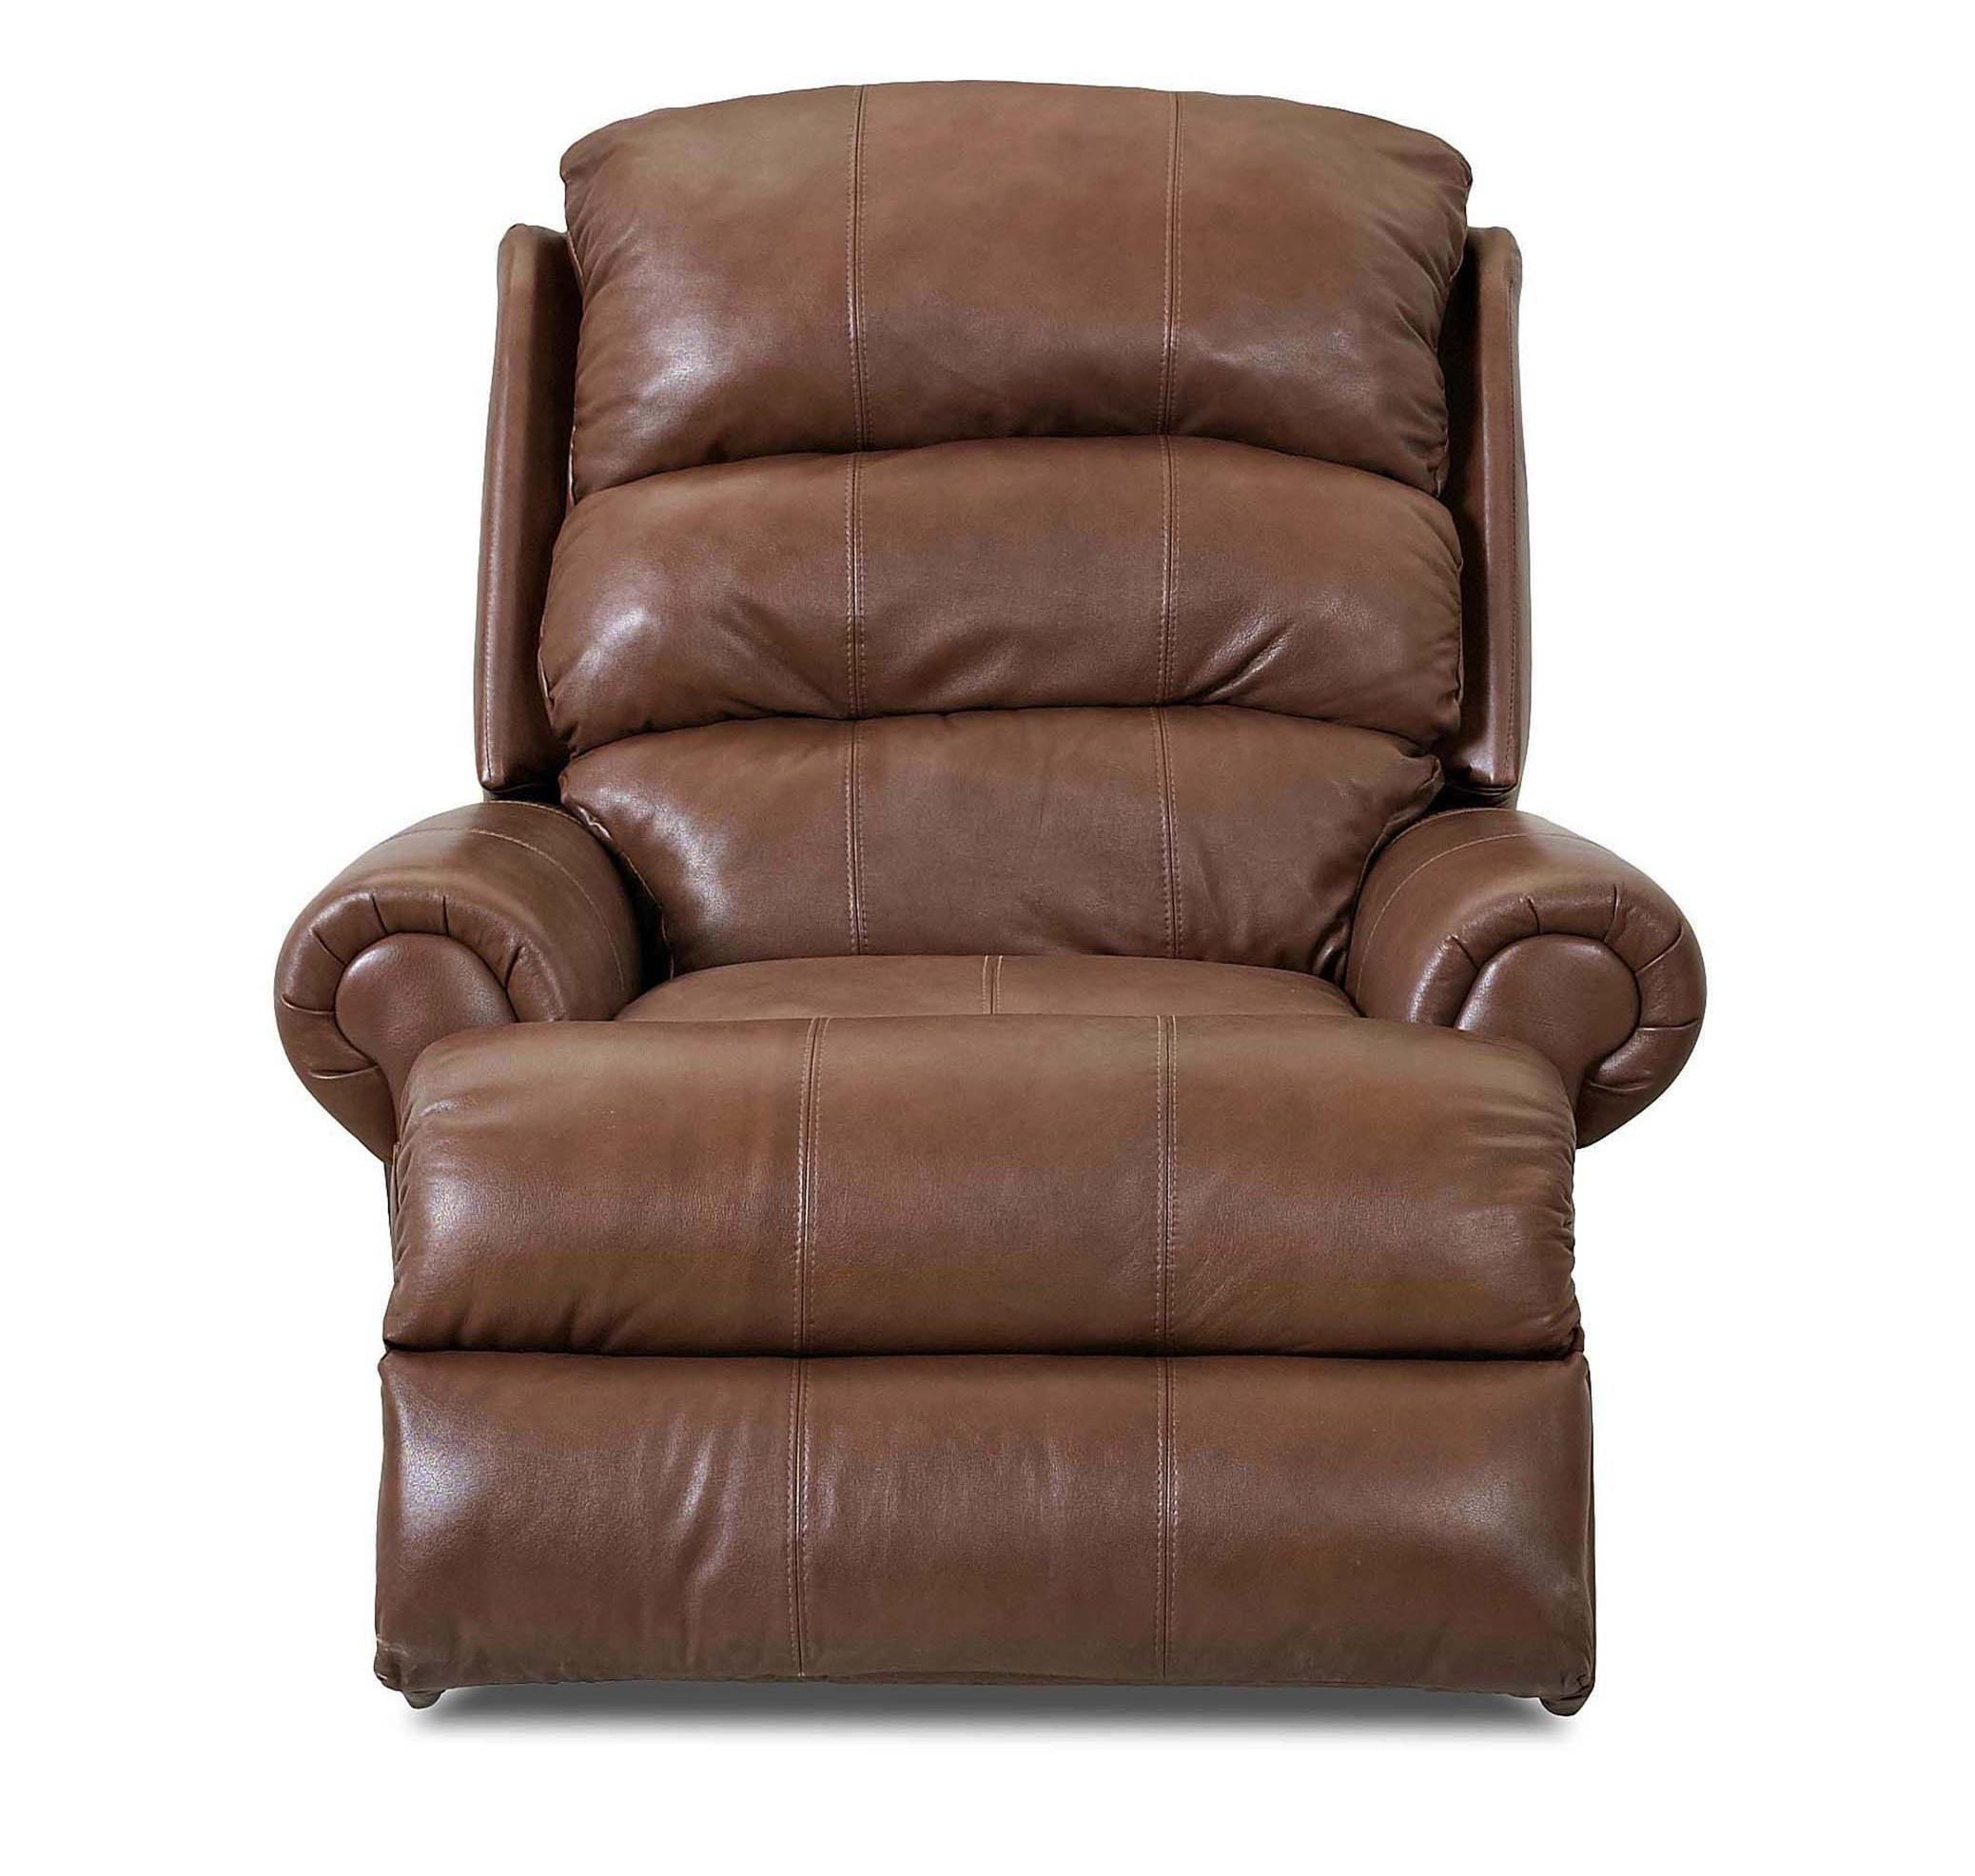 Klaussner Norman Transitional Reclining Chair - Item Number: LV91003H RC